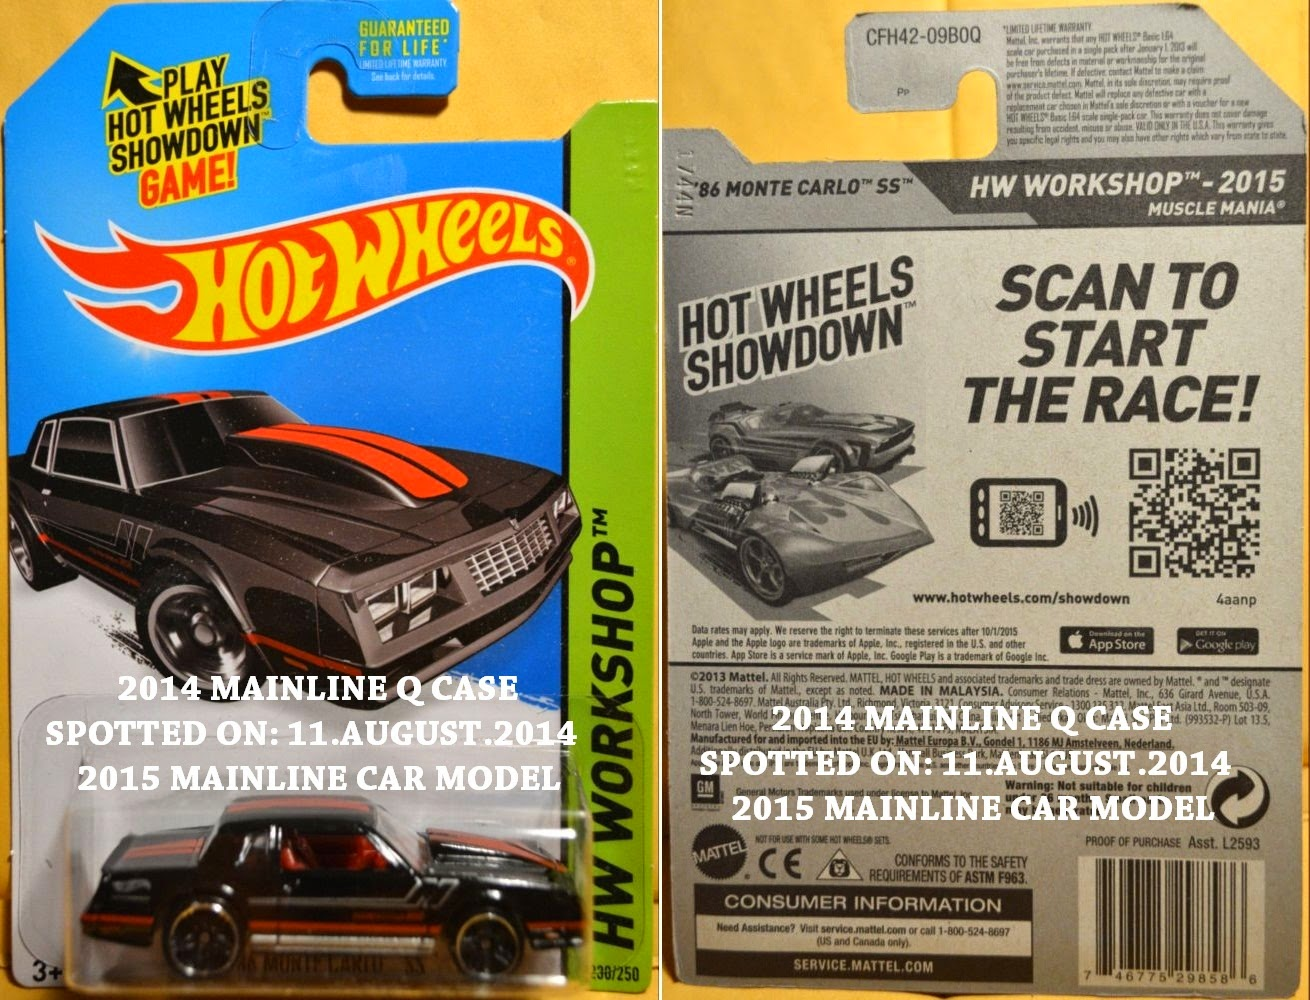 2015 HOT WHEELS LIST (listed in sequence - from left to right):